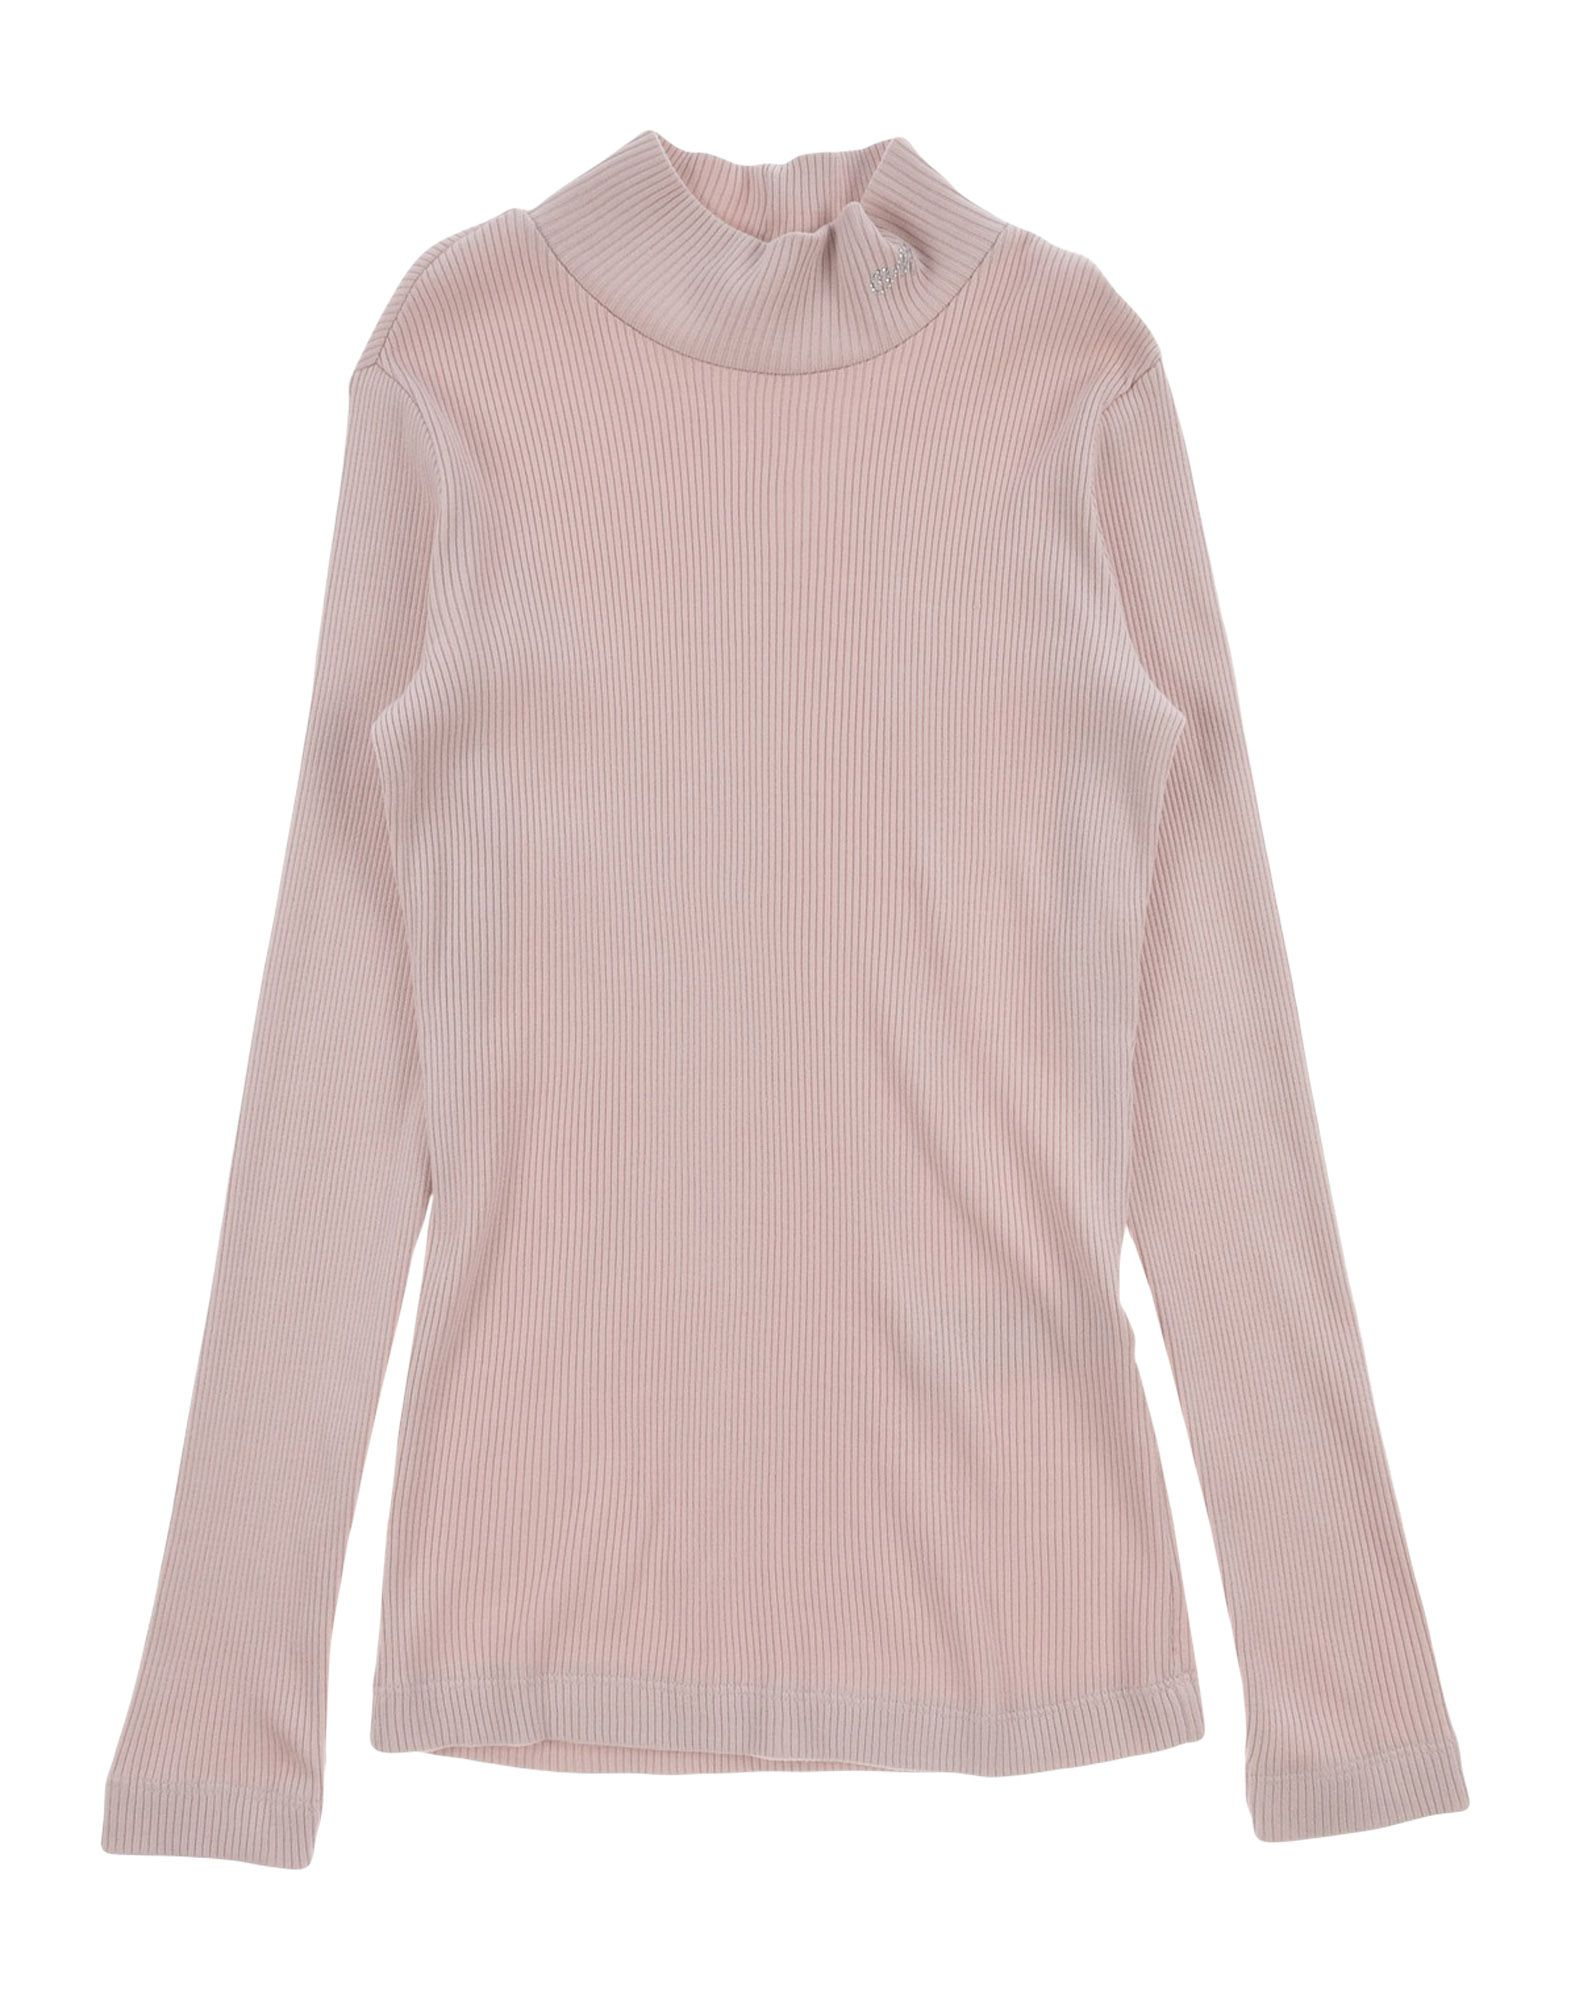 MONNALISA CHIC Turtleneck in Pale Pink